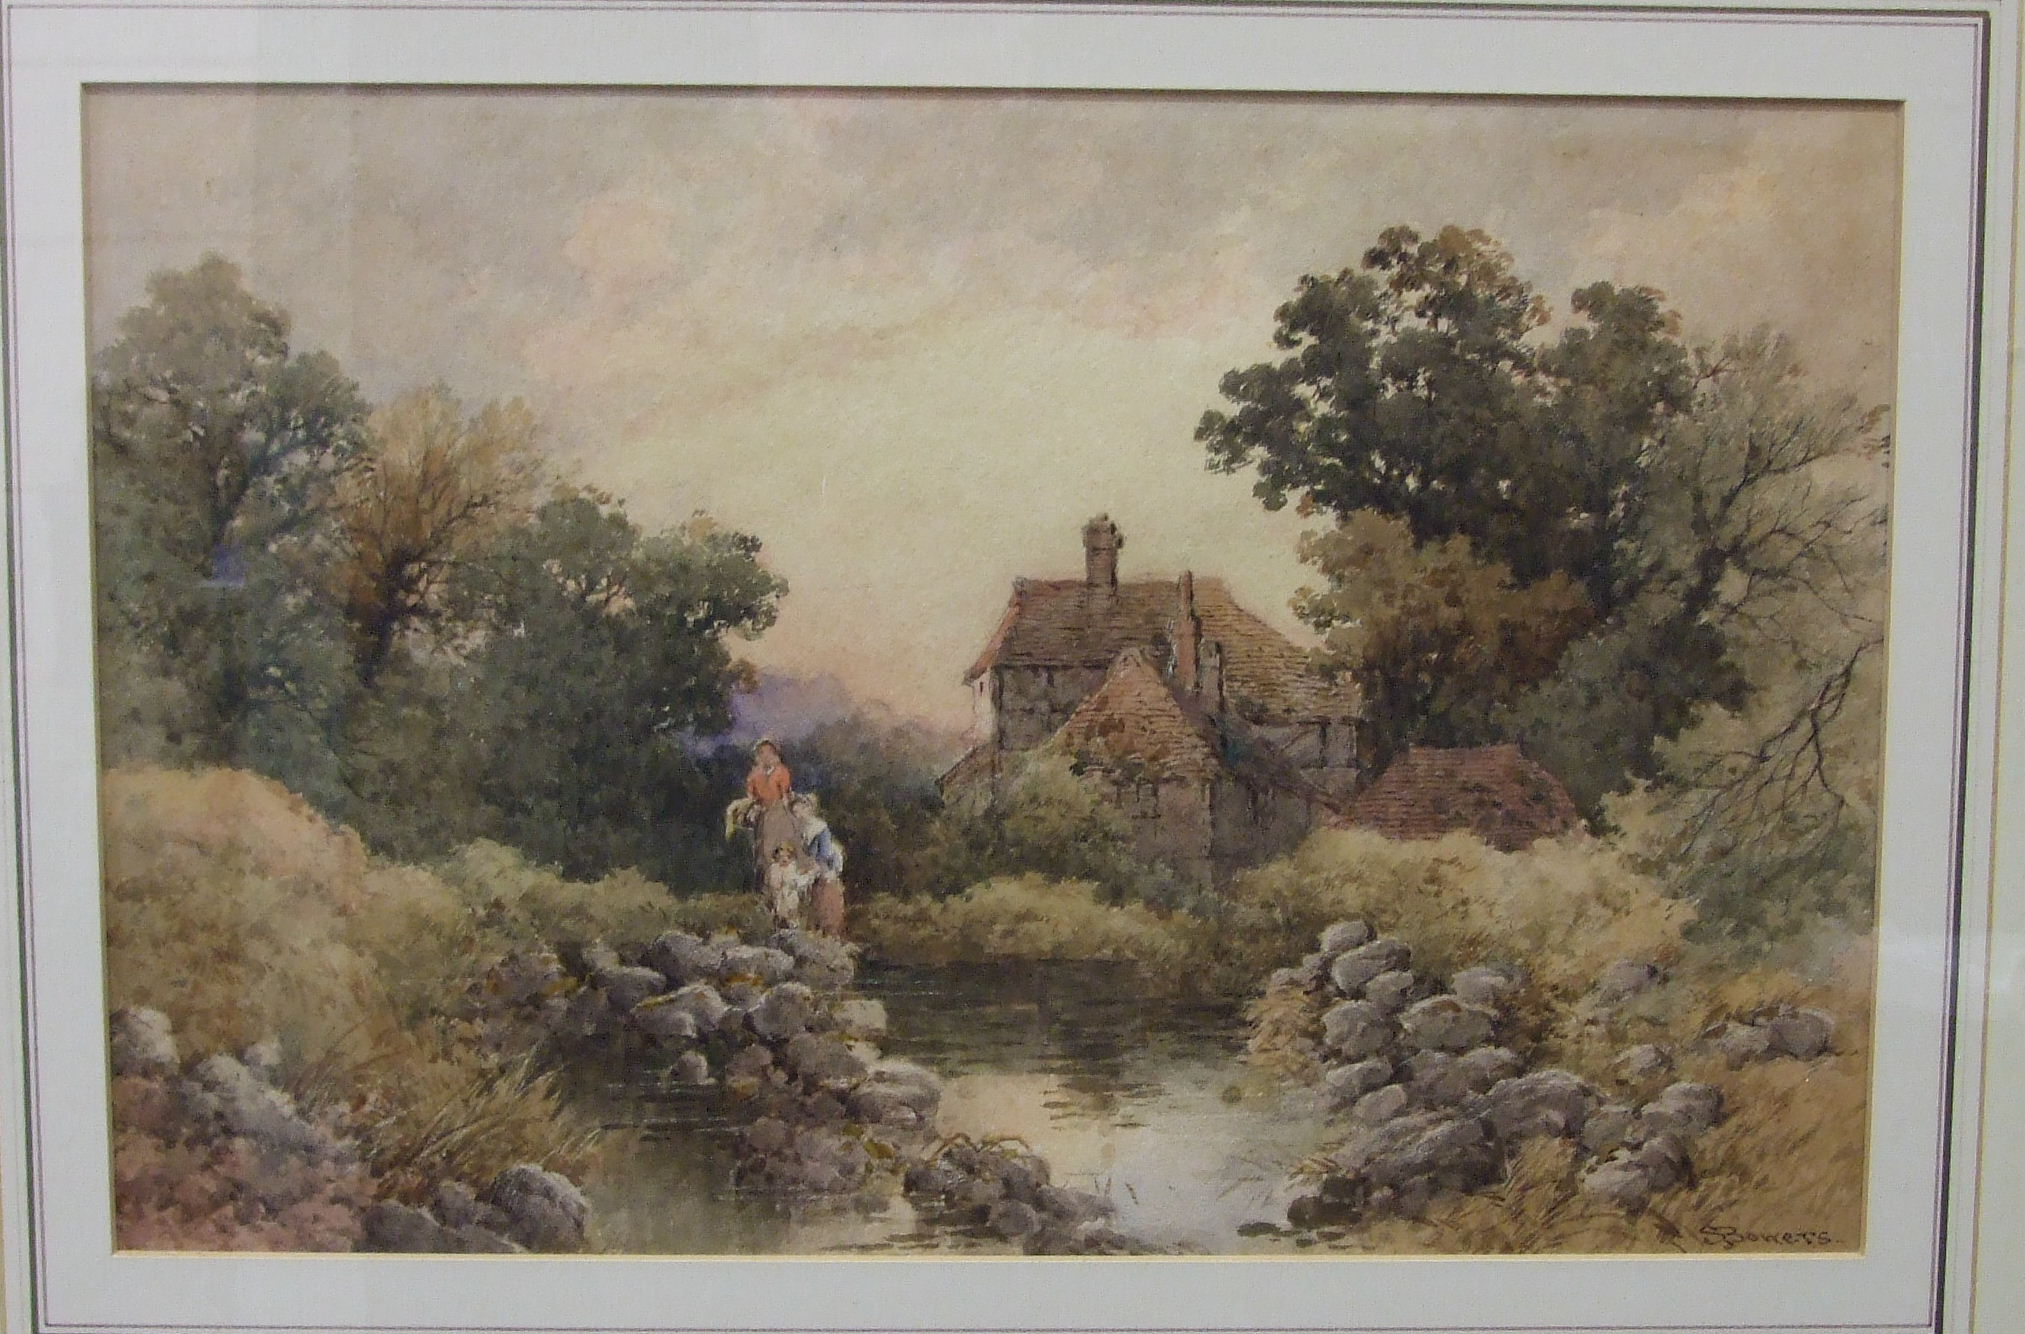 Lot 33 - S Bowers FIGURES BESIDE A STREAM OUTSIDE A COTTAGE Signed watercolour, 24 x 37.5cm.